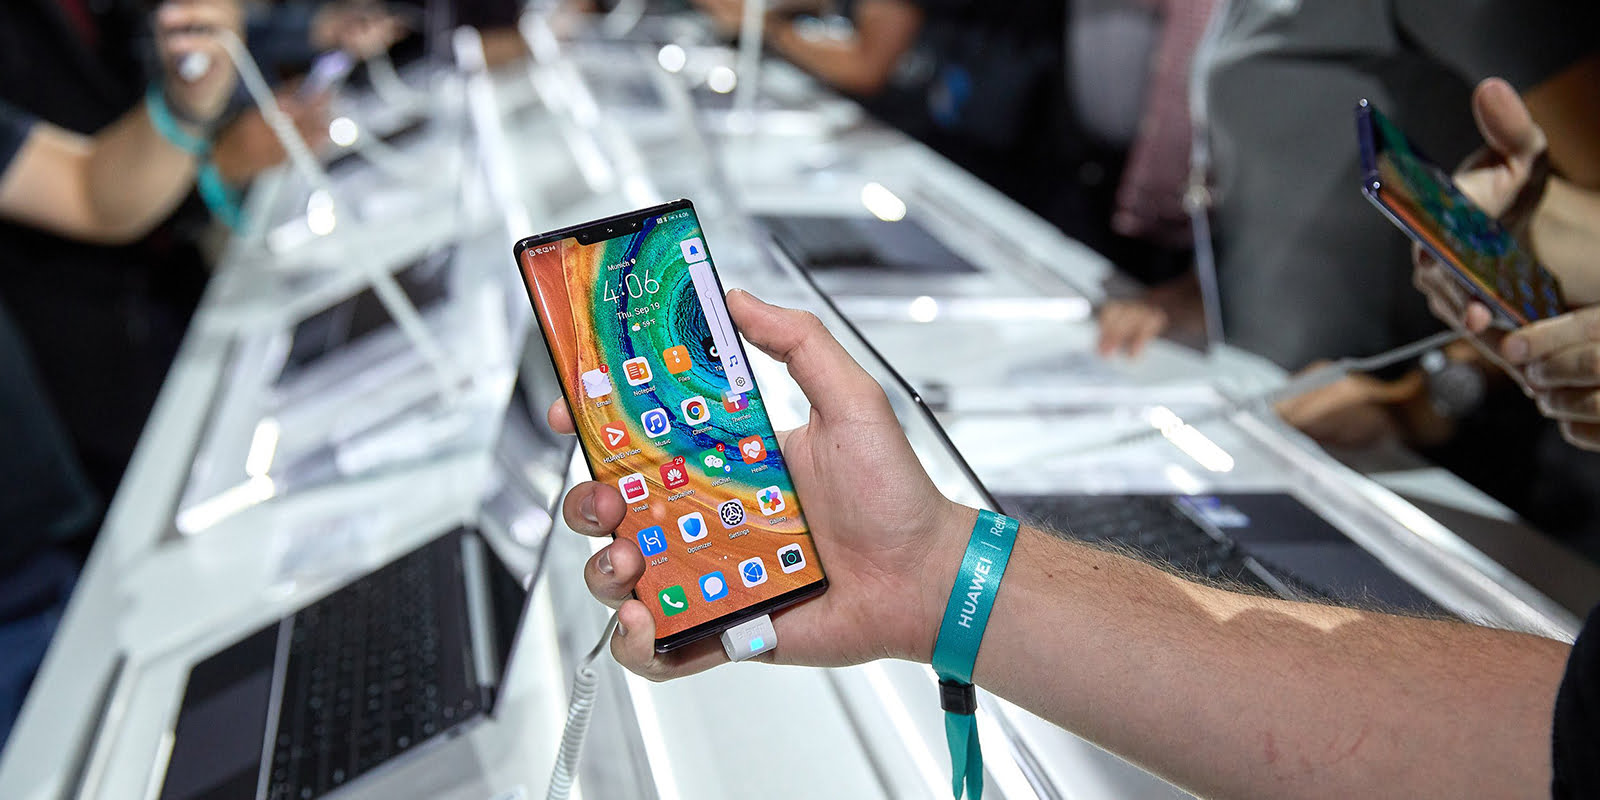 Huawei Mate 30 Pro in hands at Huawei Event